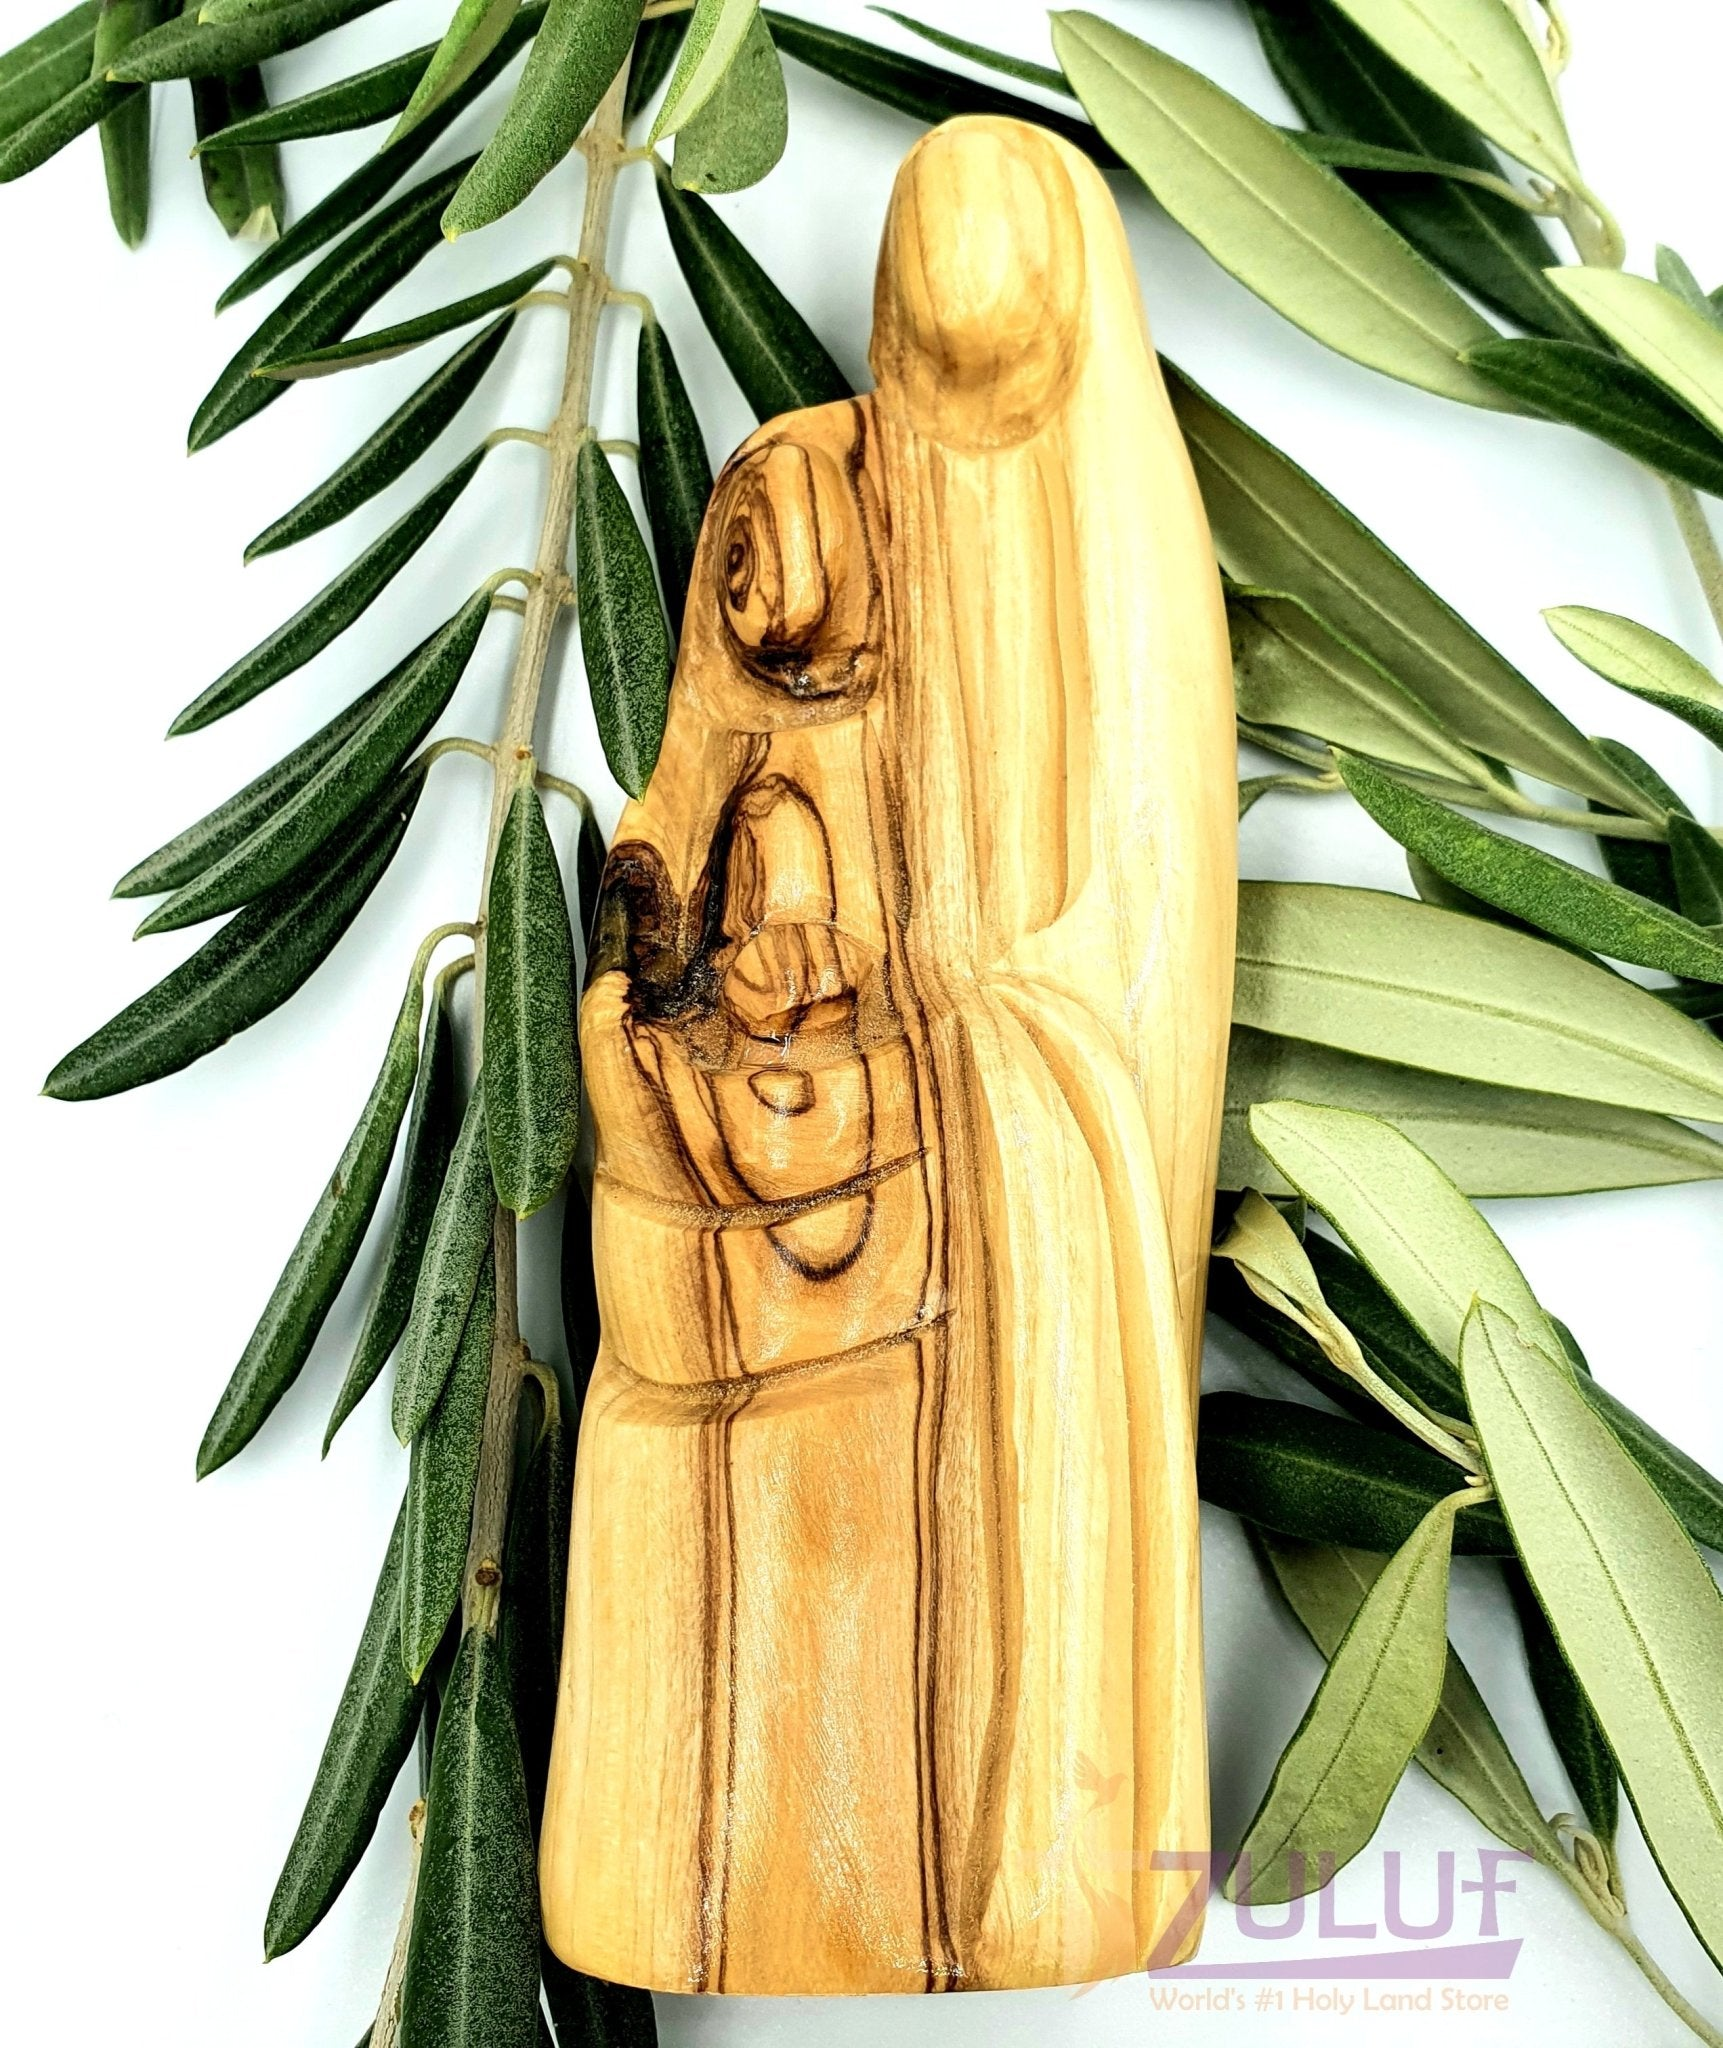 Holy Family Olive Wood Figure Made In The Holy Lands Zuluf - 15X6CM/5.9X2.3in (HOF015) - Zuluf